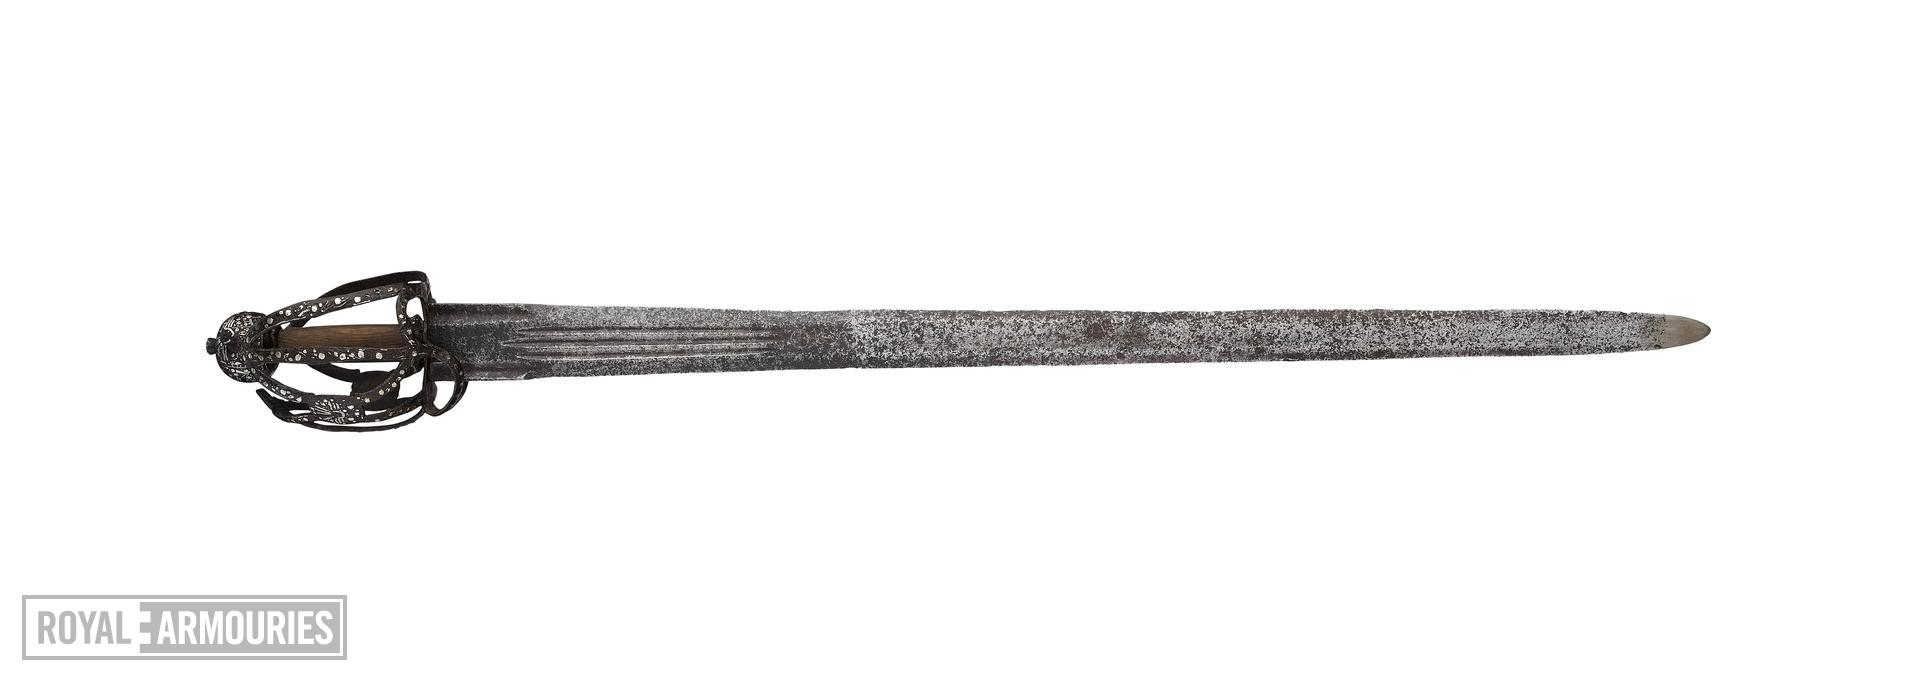 Sword Broadsword with Andrea Ferara blade, probably of Solingen manufacture